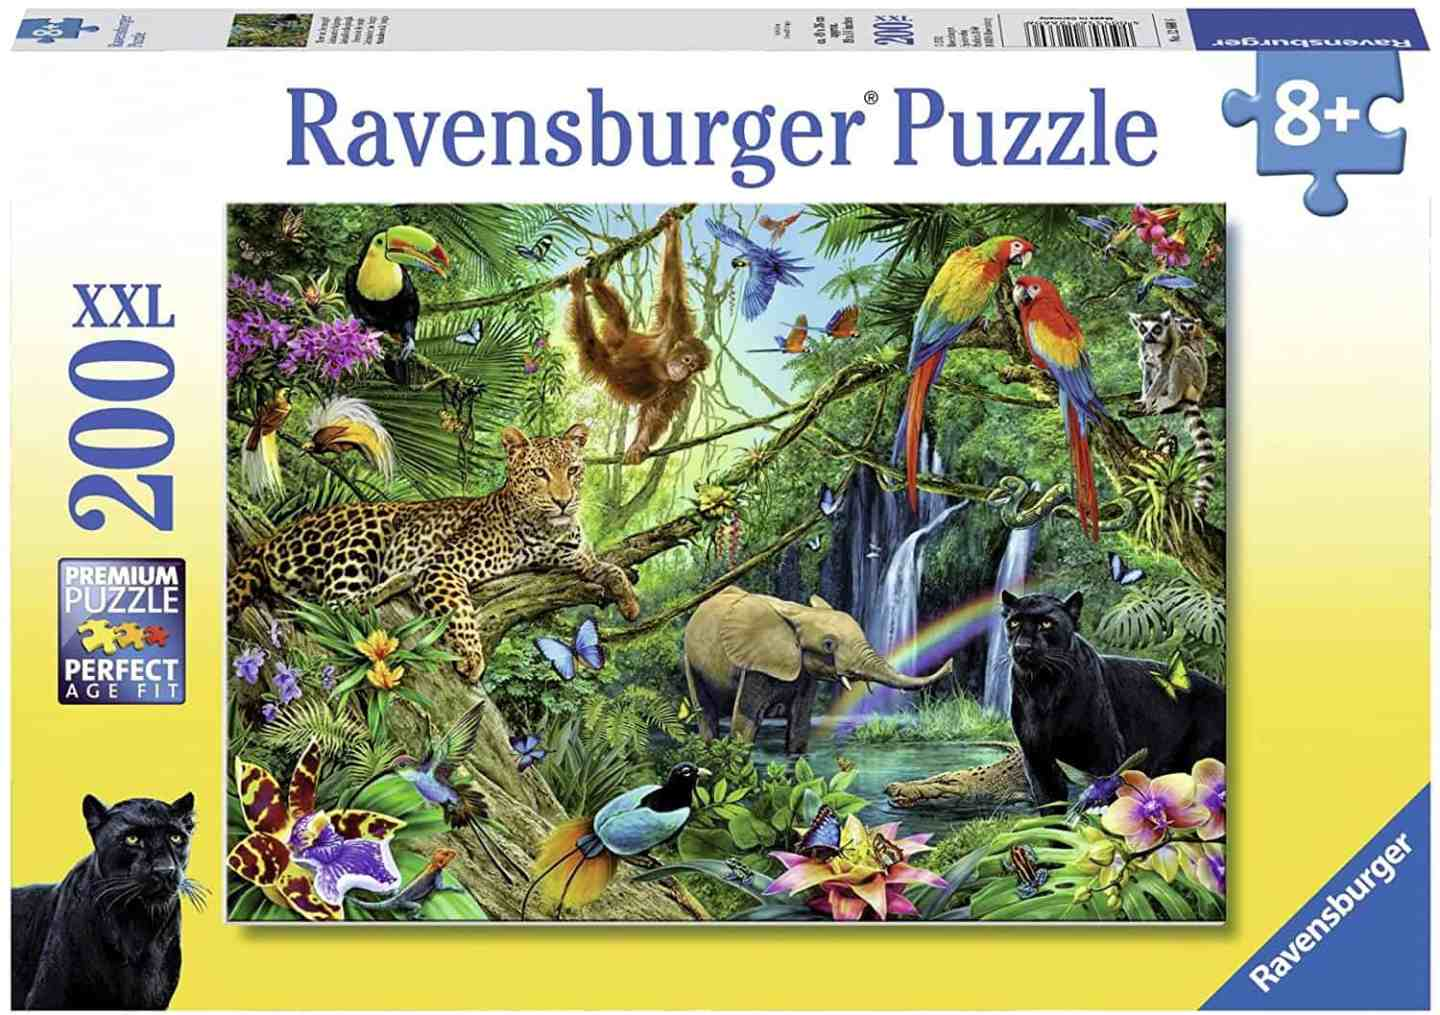 200 piece jigsaw puzzle by Ravensburger